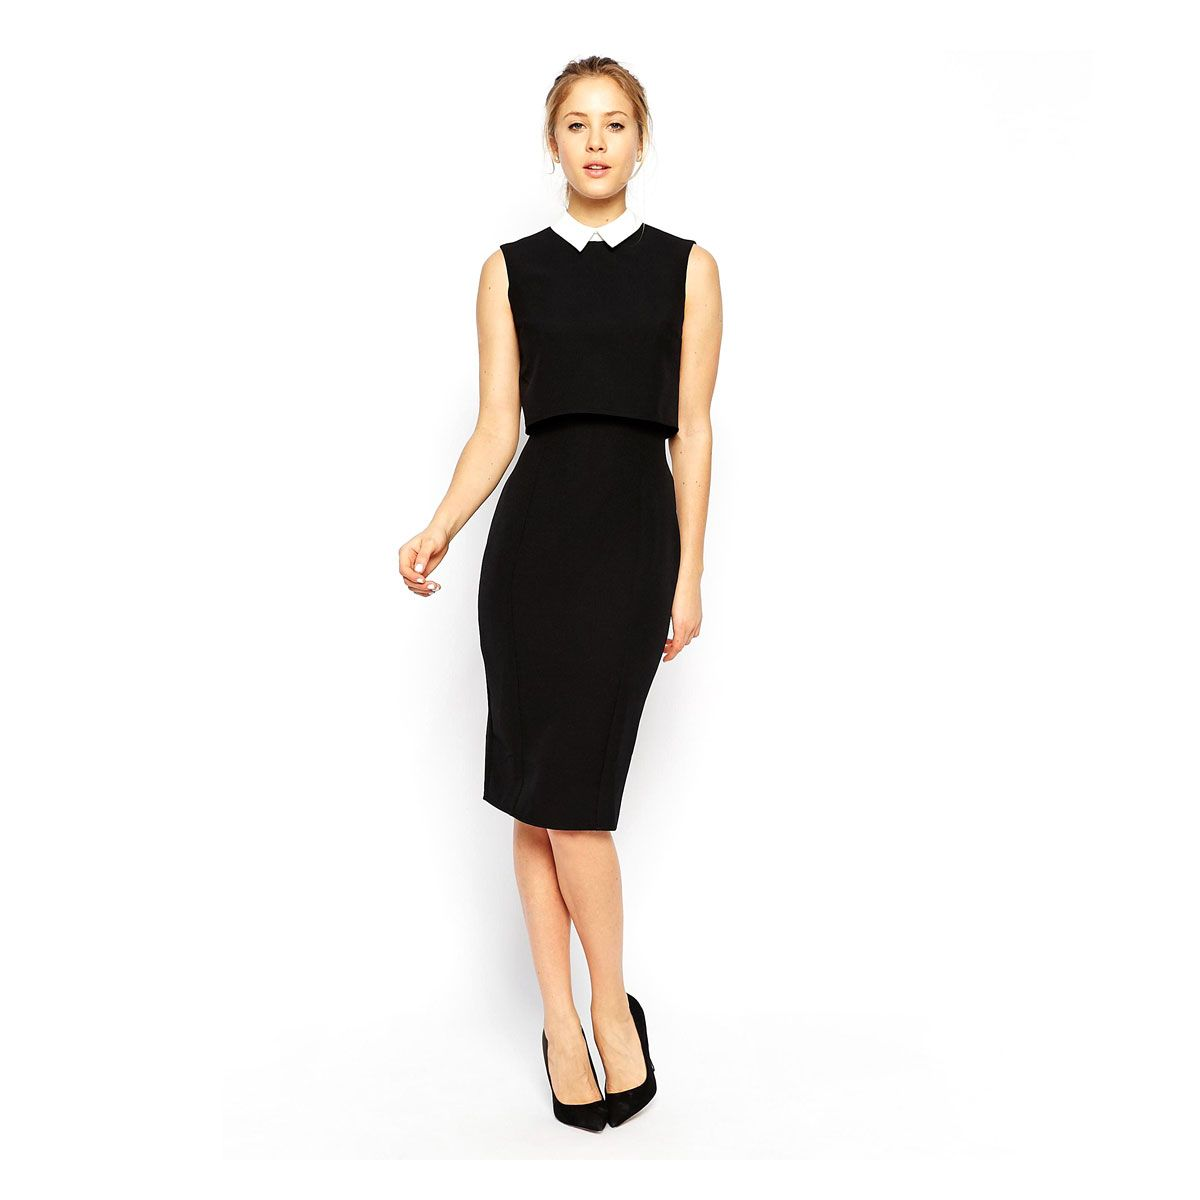 15 Work Dresses For Any Office The Conservative Contrast Collar Dress